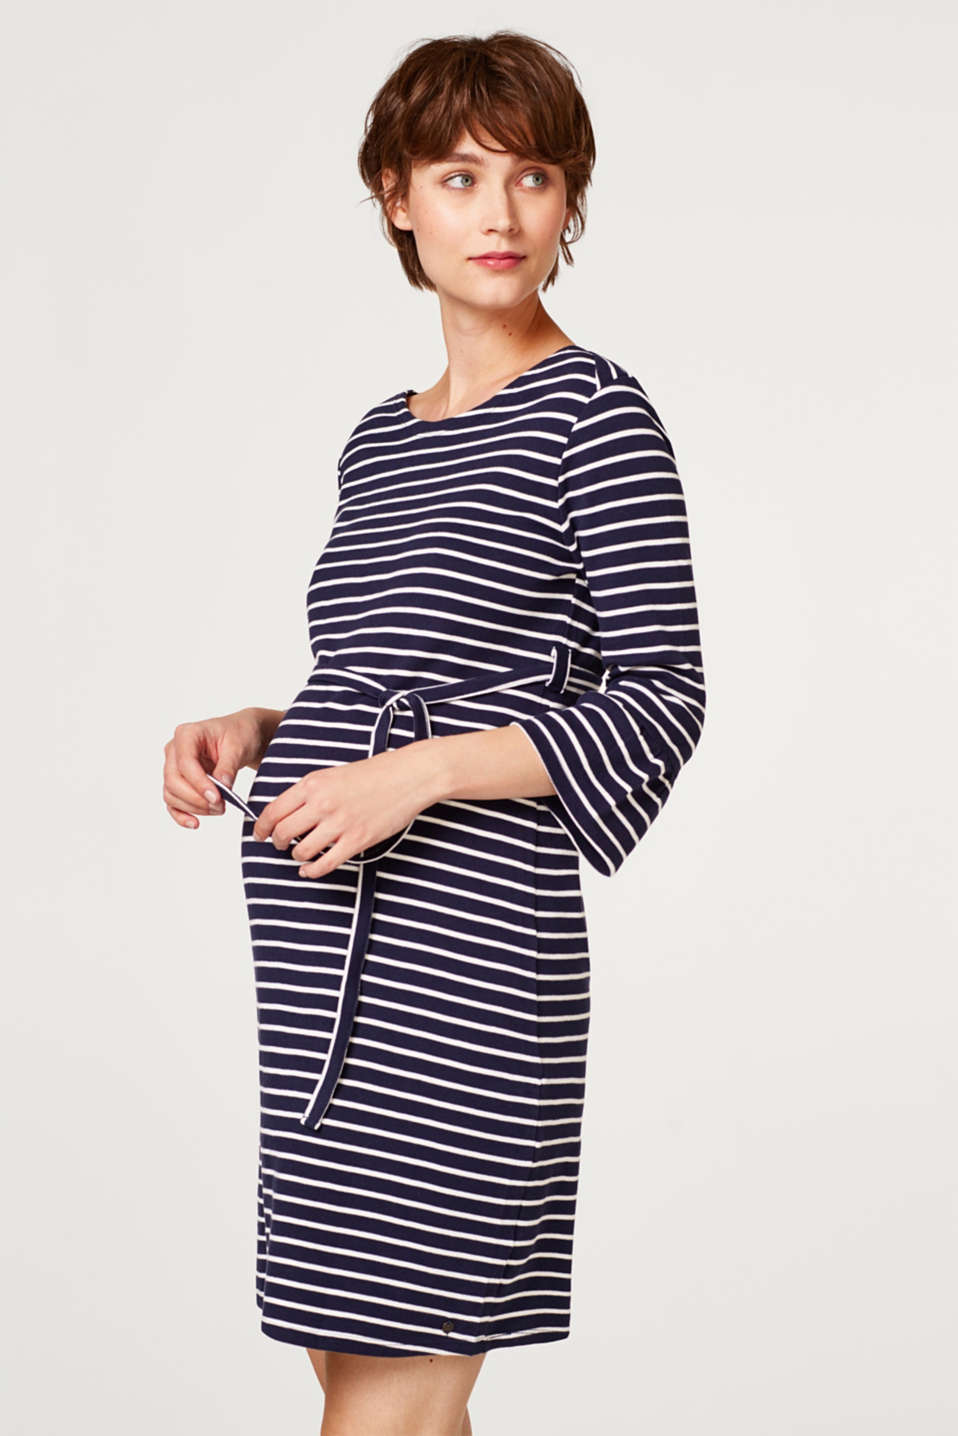 Esprit - Jersey dress made of organic cotton